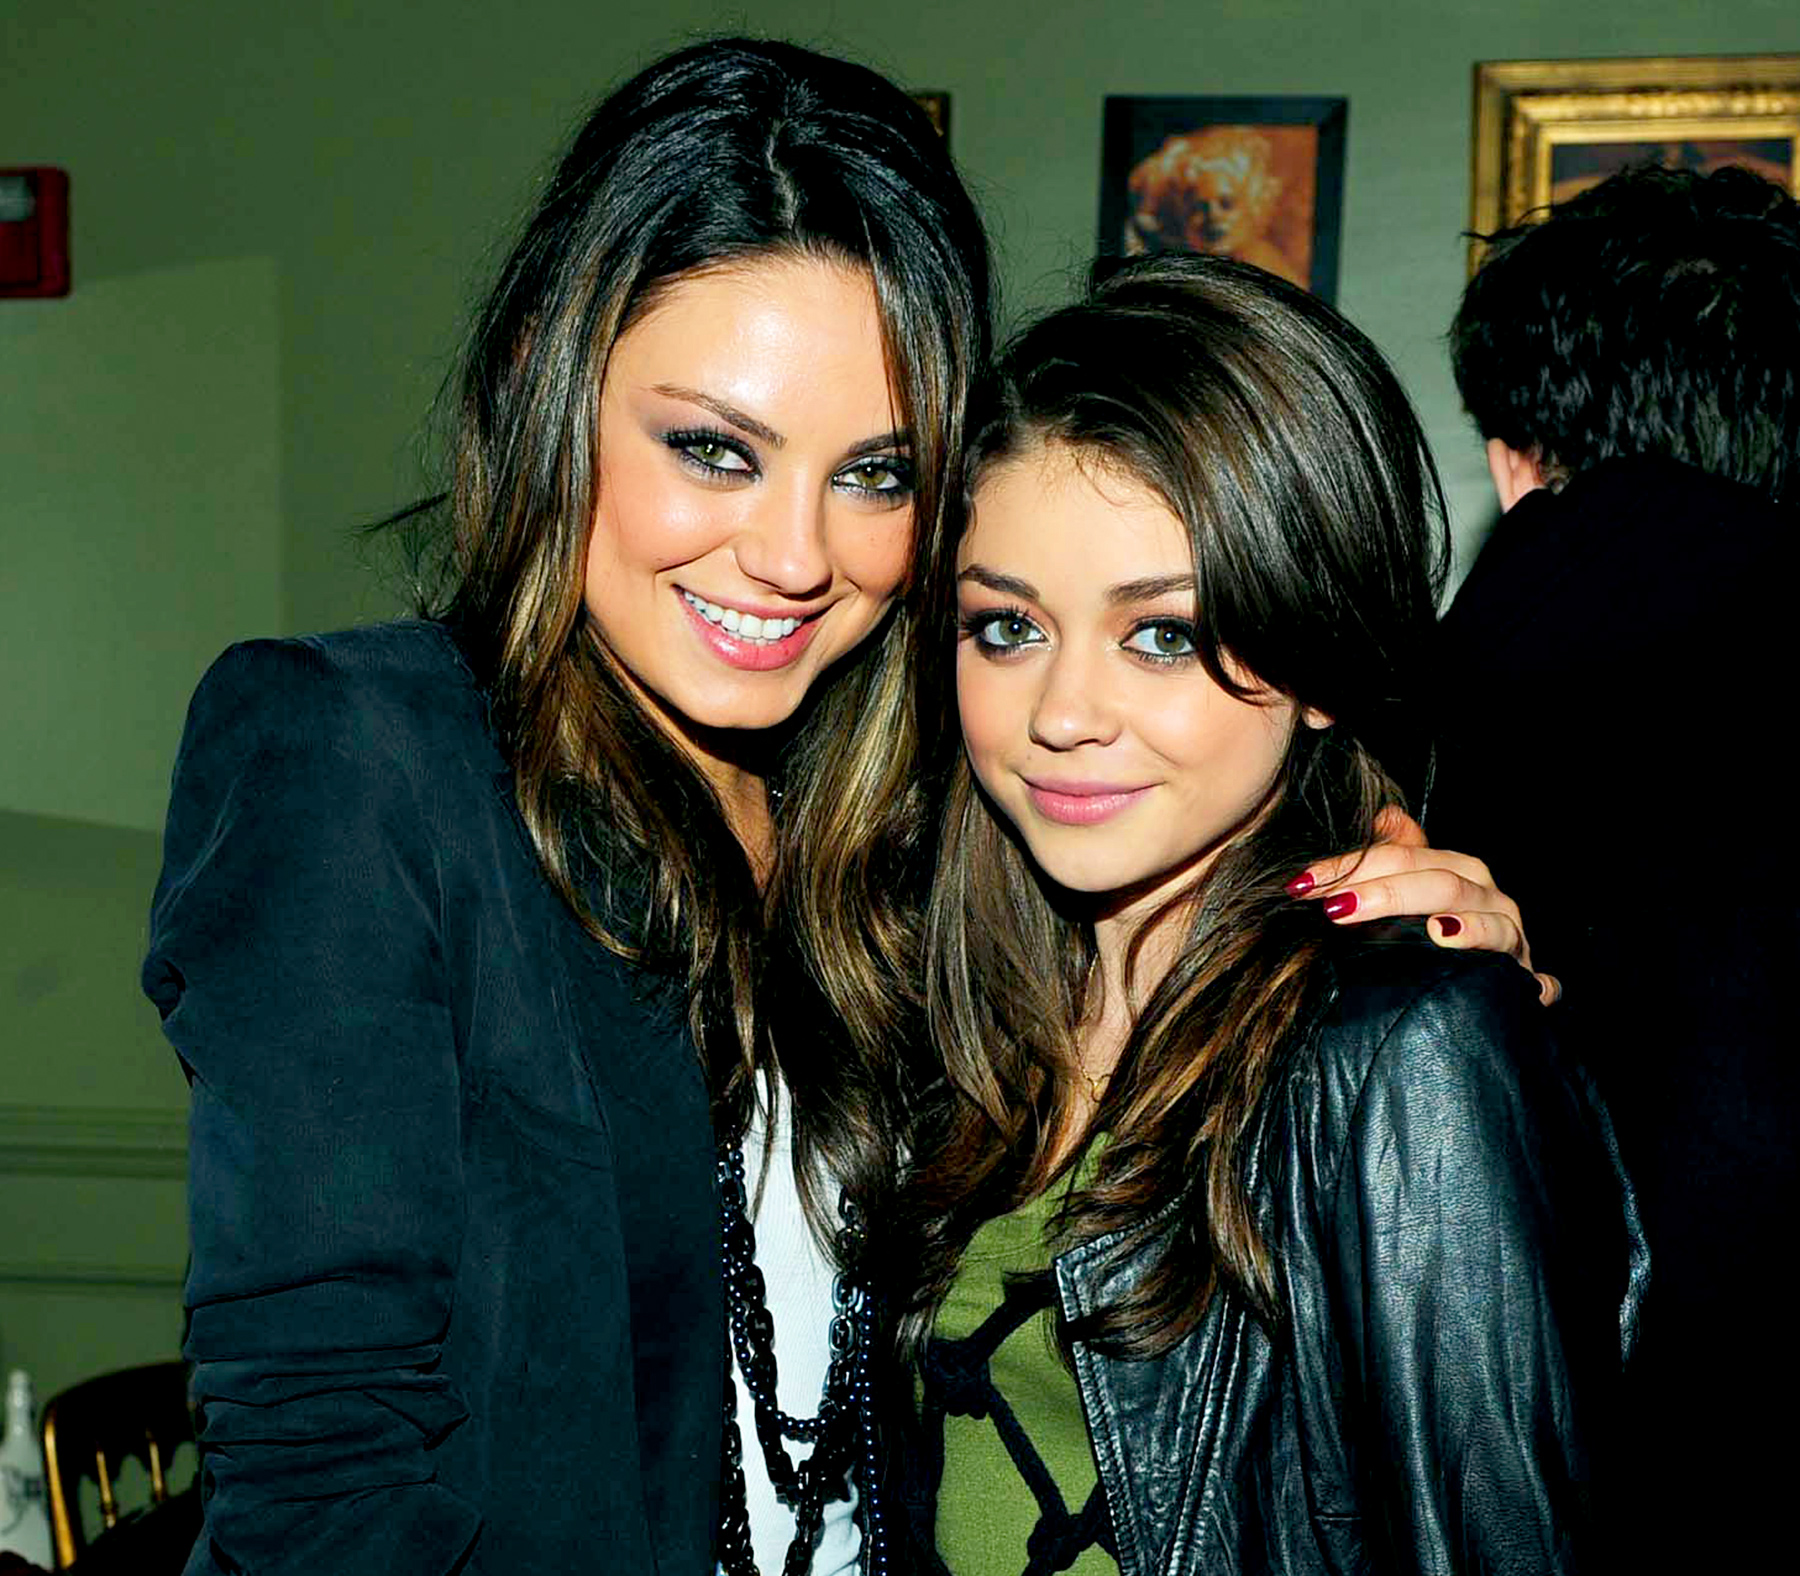 Image result for Sarah Hyland and Mila Kunis